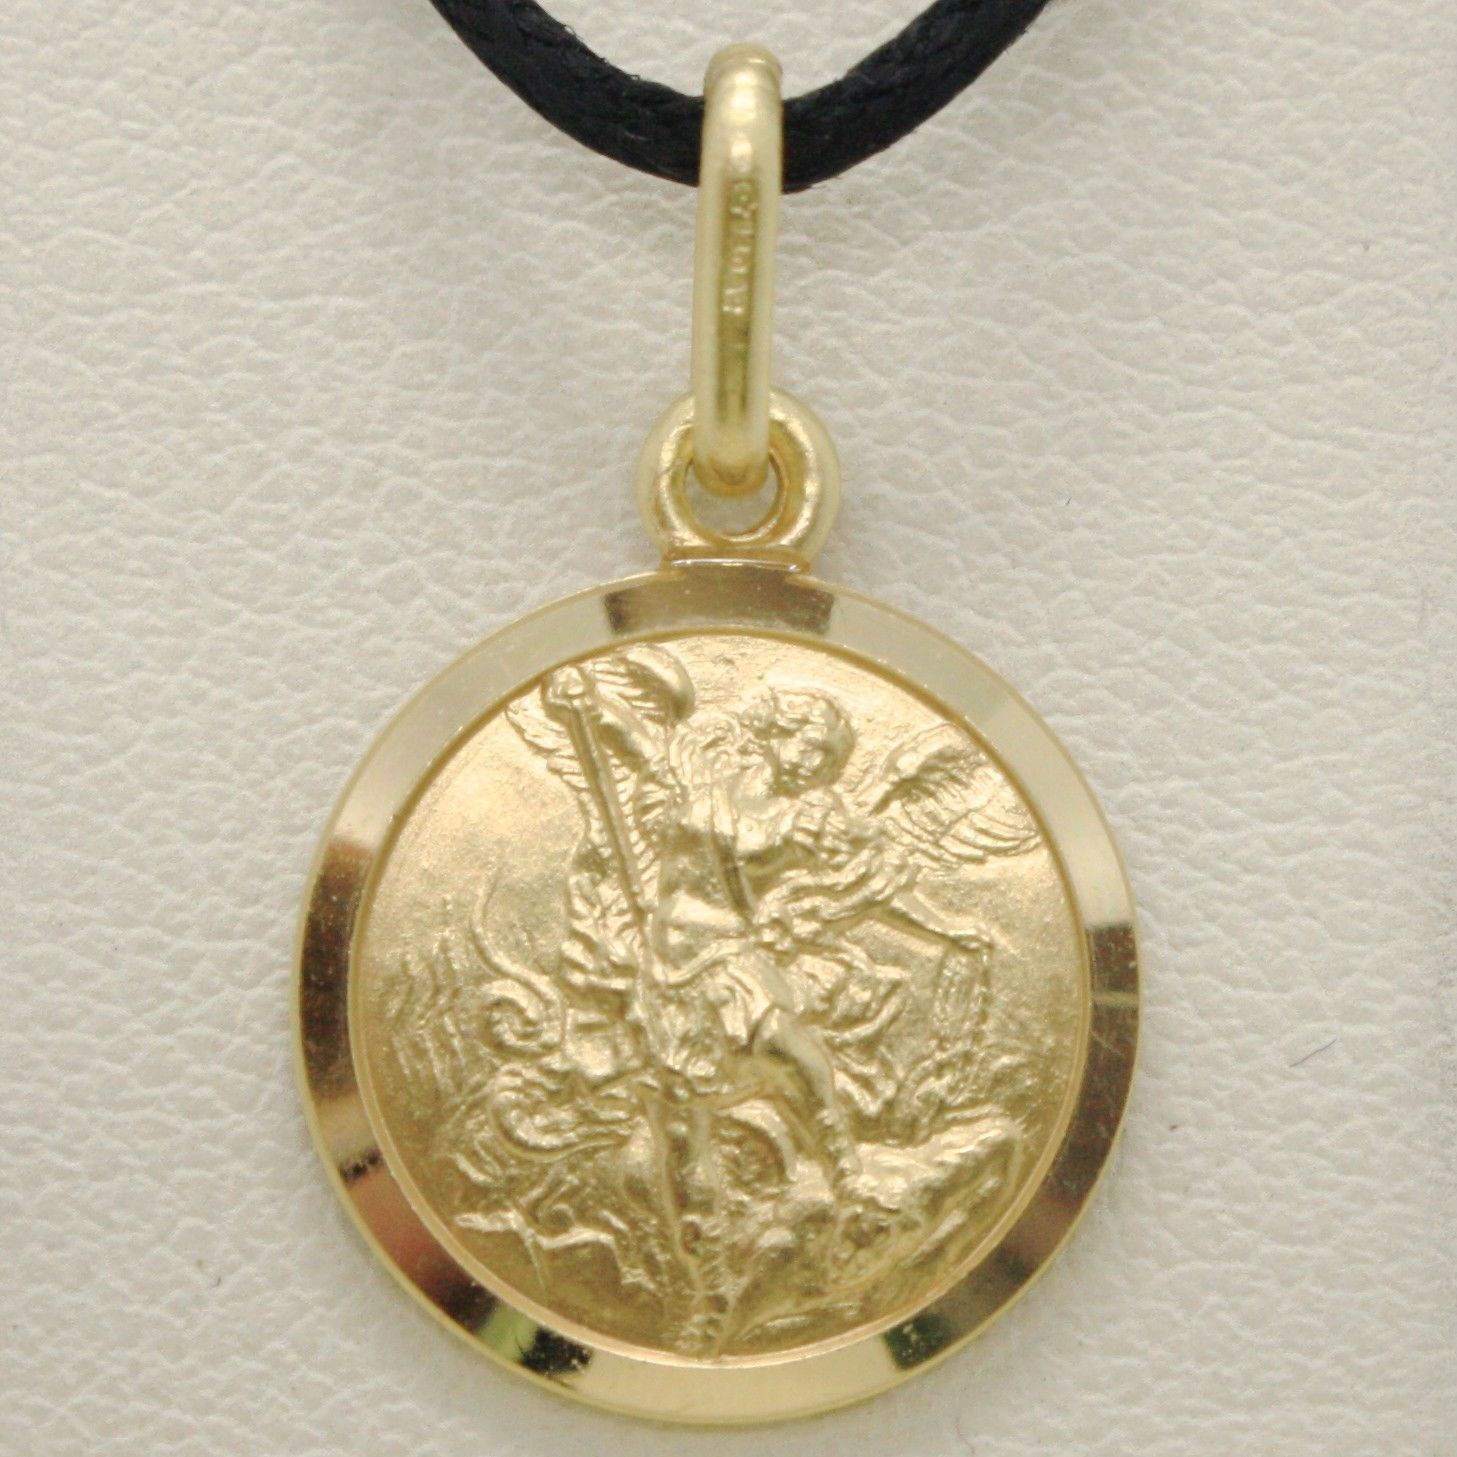 SOLID 18K YELLOW GOLD SAINT MICHAEL ARCHANGEL 13 MM MEDAL, PENDANT MADE IN ITALY